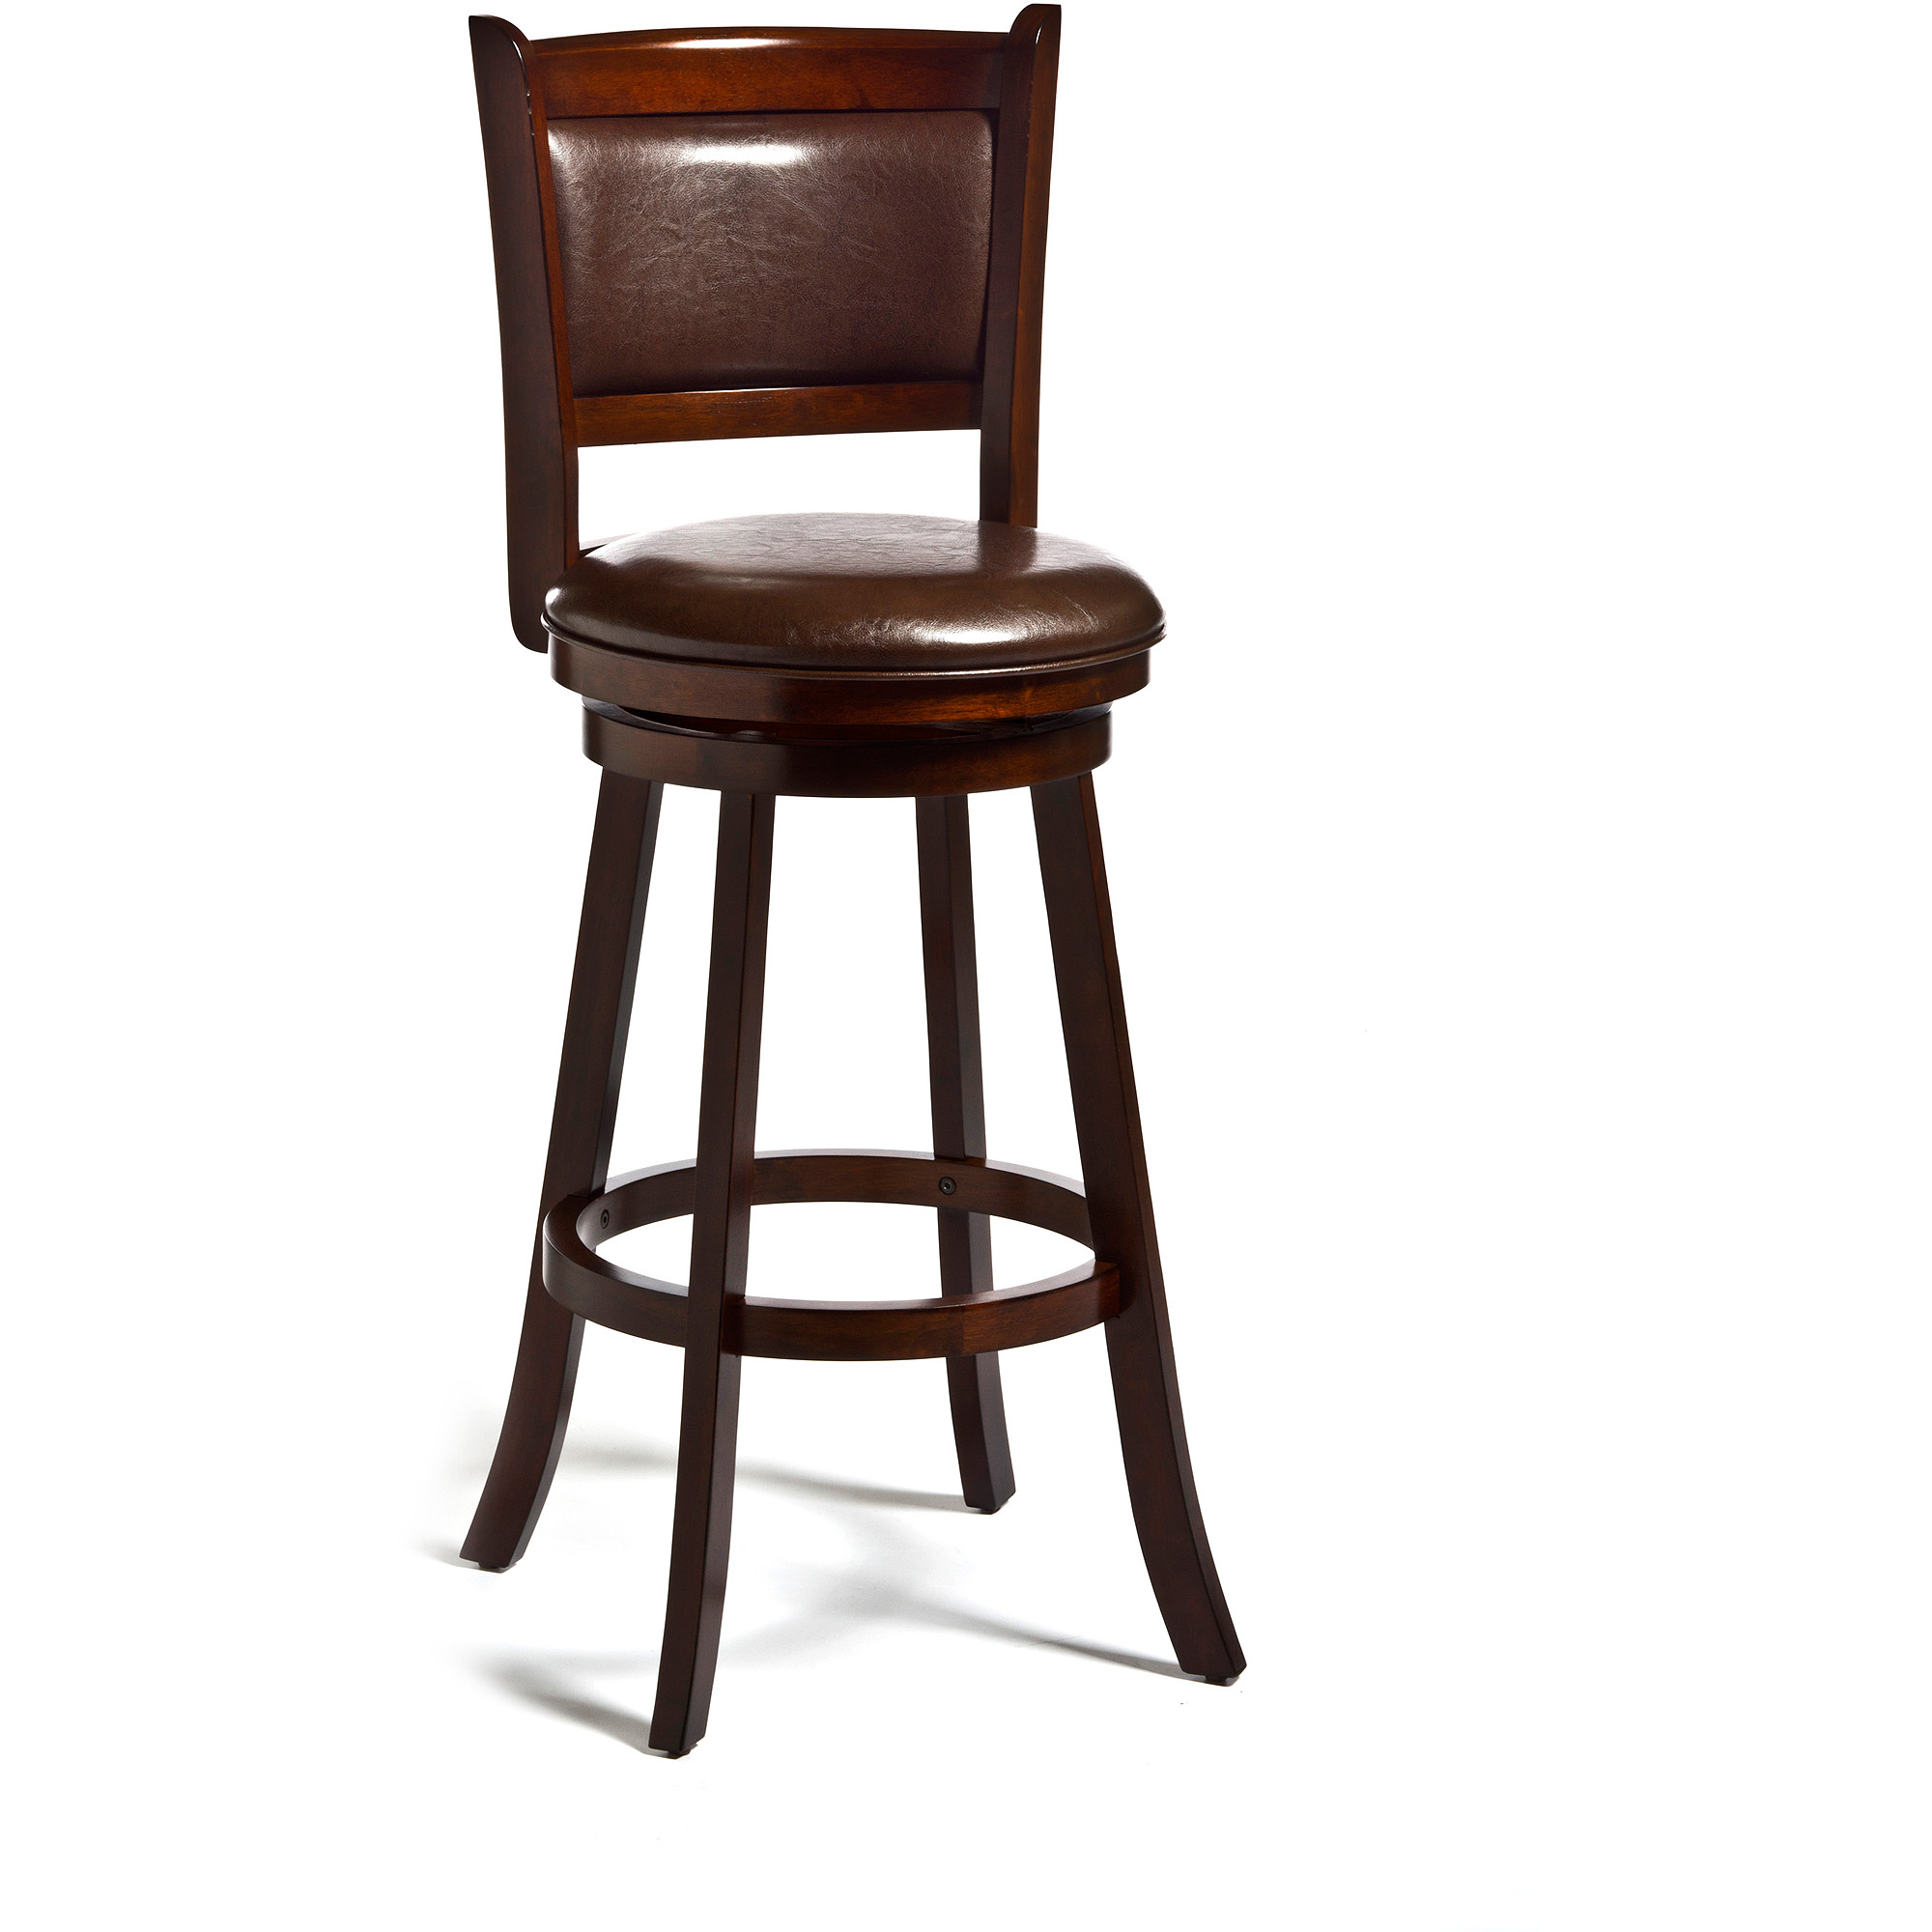 Dennery Swivel Bar Stool by Hillsdale Furniture LLC